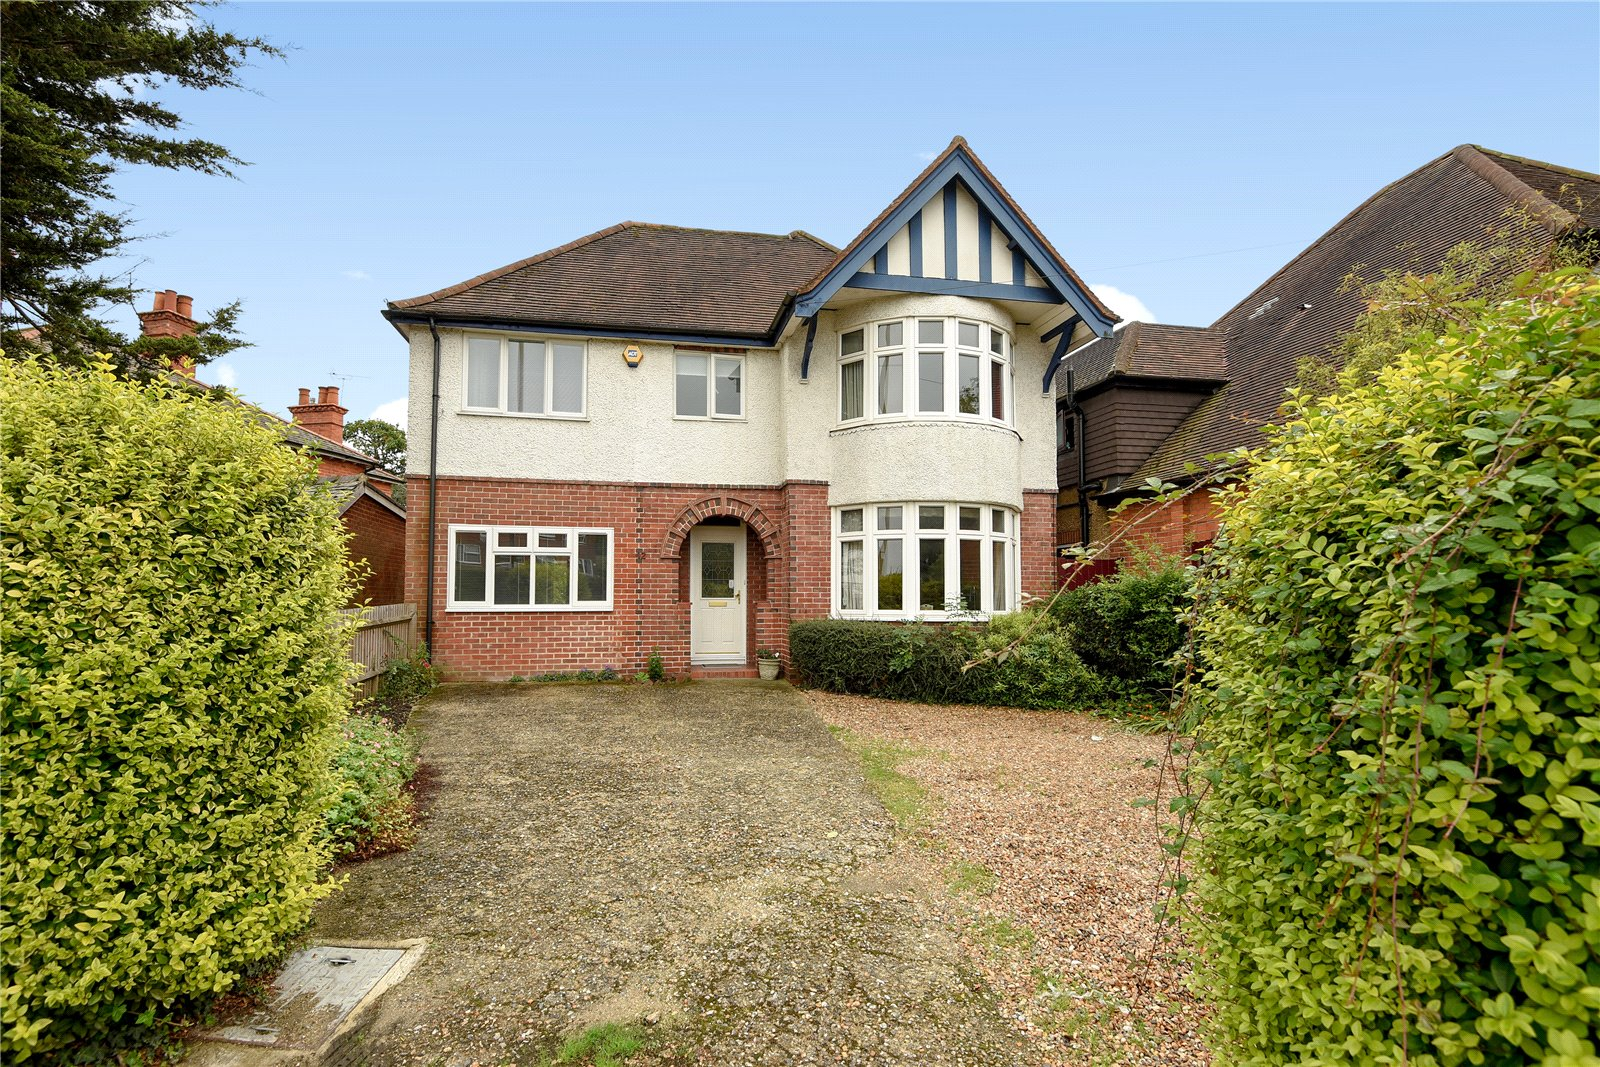 5 Bedrooms Detached House for sale in Elm Road, Earley, Reading, Berkshire, RG6